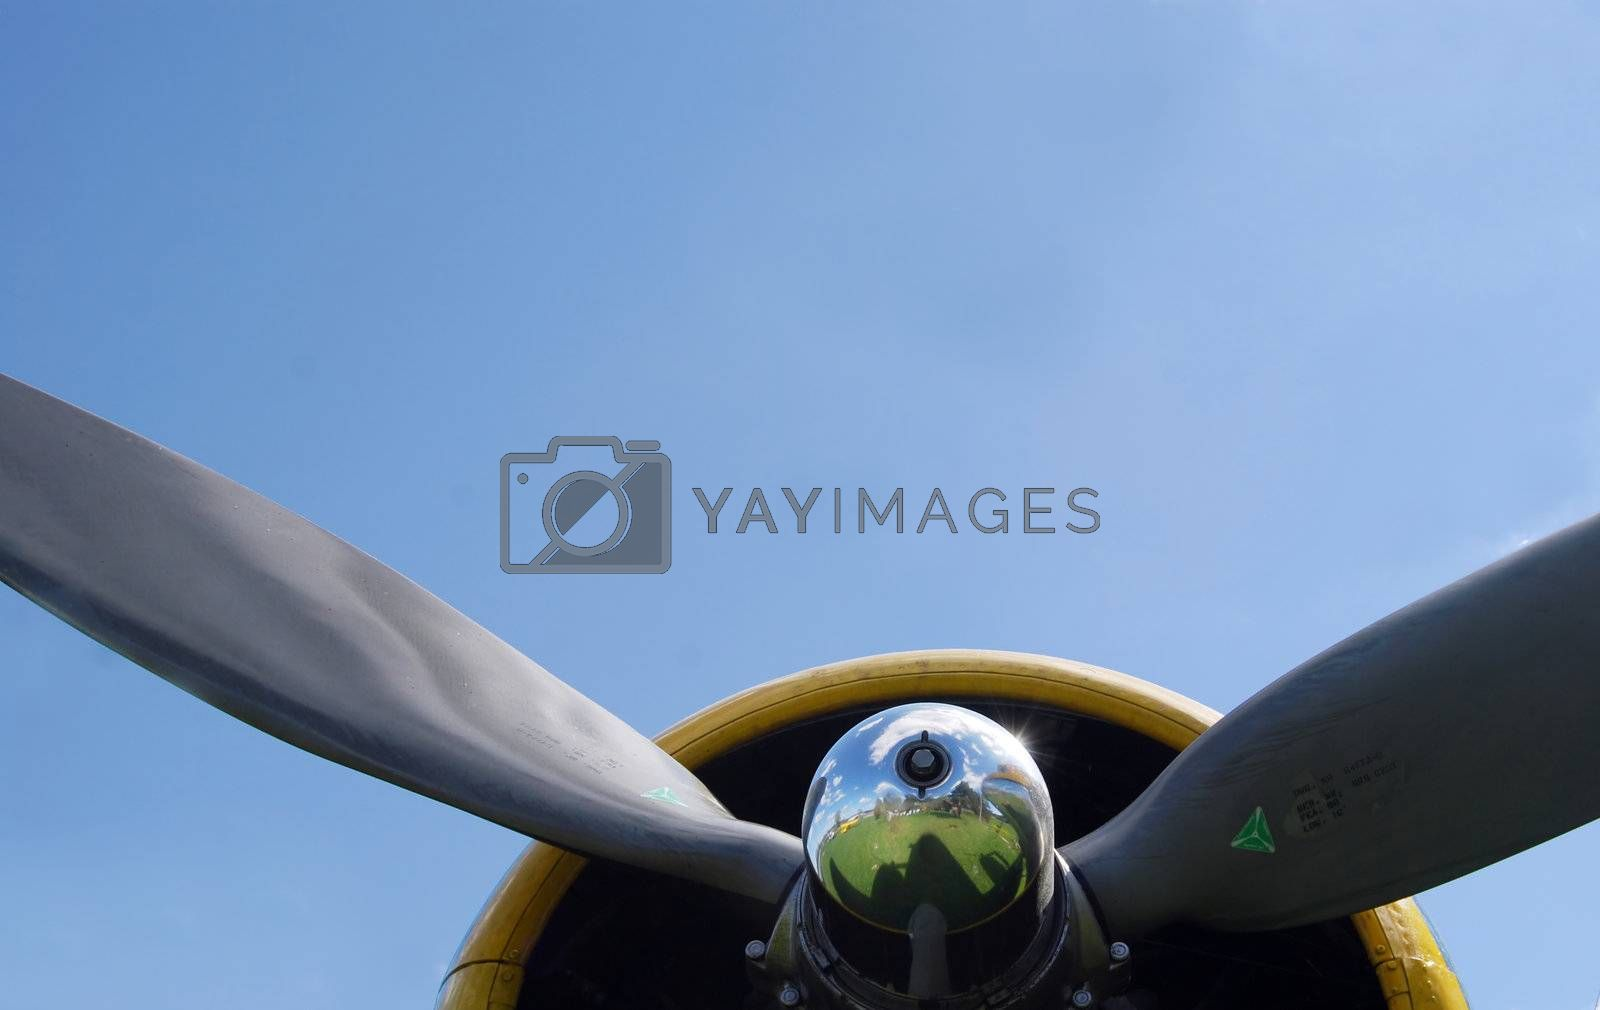 Airplane prop by windmill